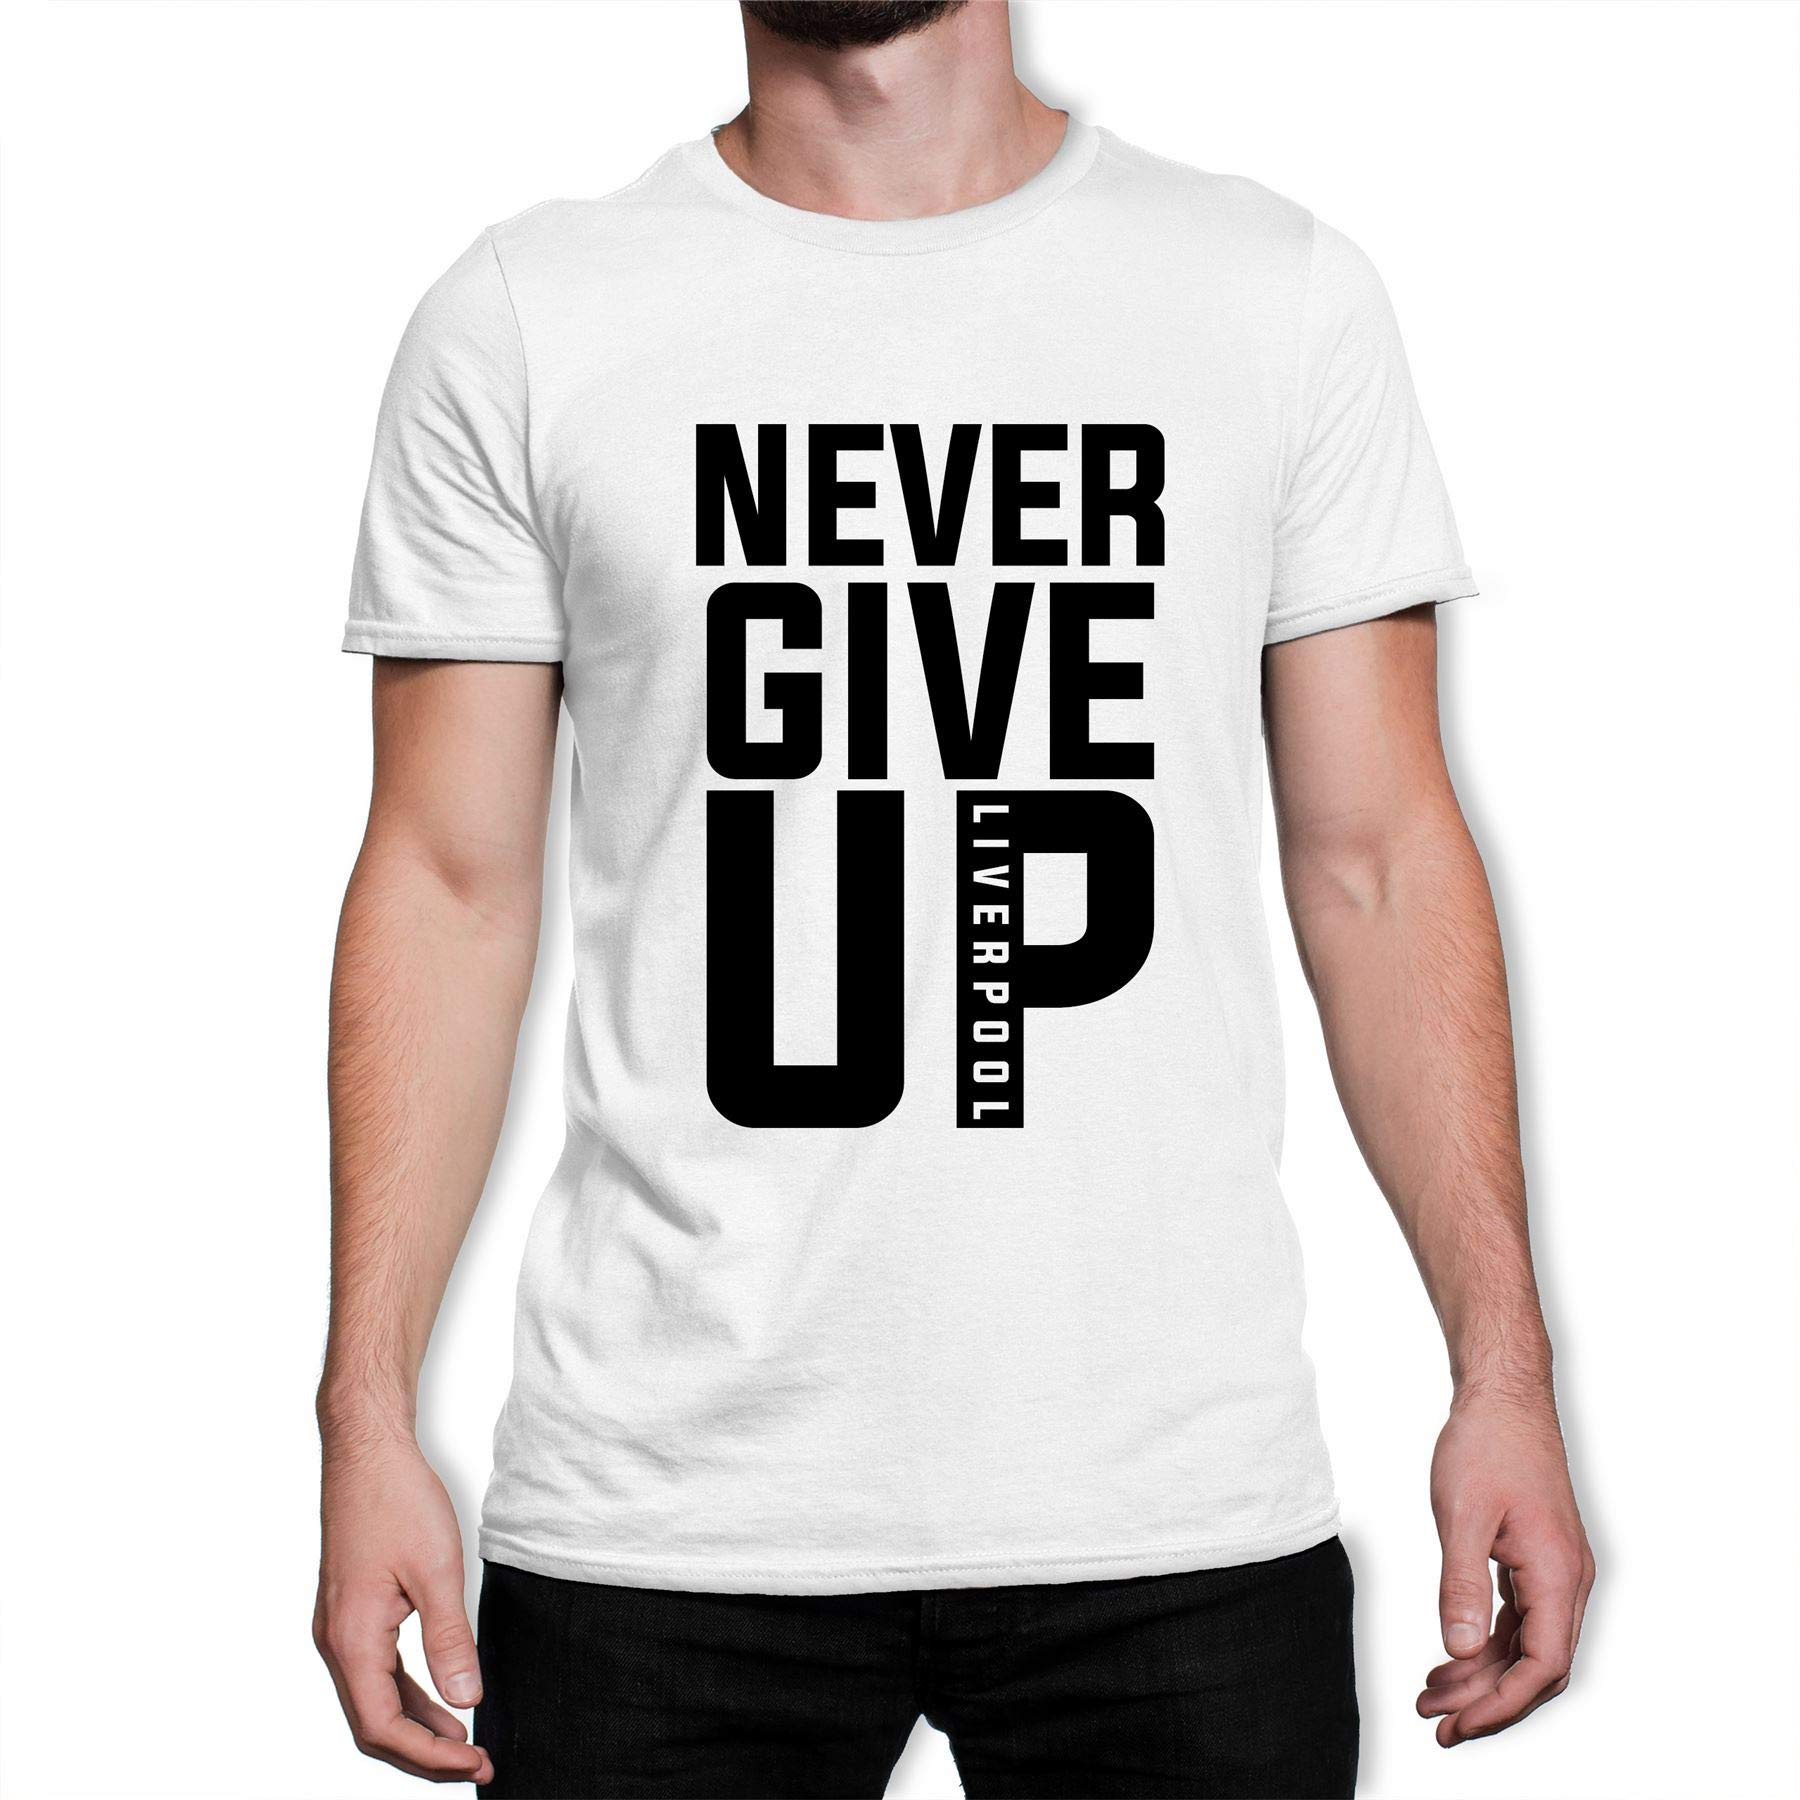 Never Give Up Liverpool Fc 2019 Champions League Black Text S Tshirt